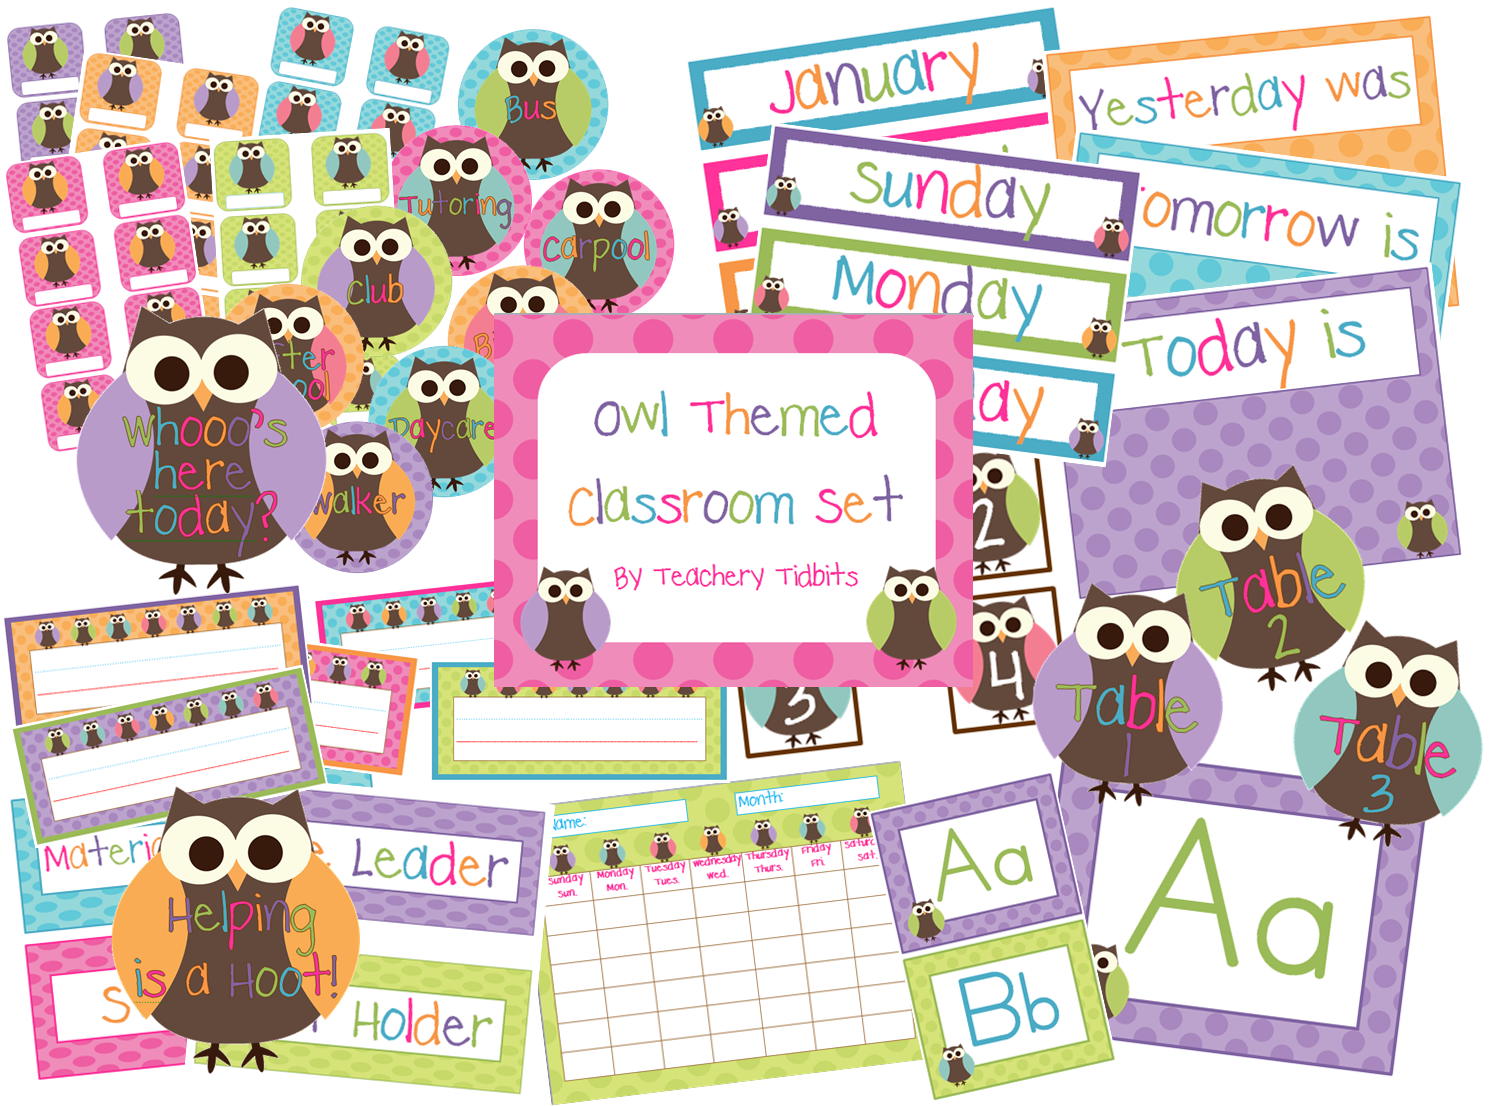 Cute Owl Classroom Decorations ~ Teachery tidbits followers giveaway